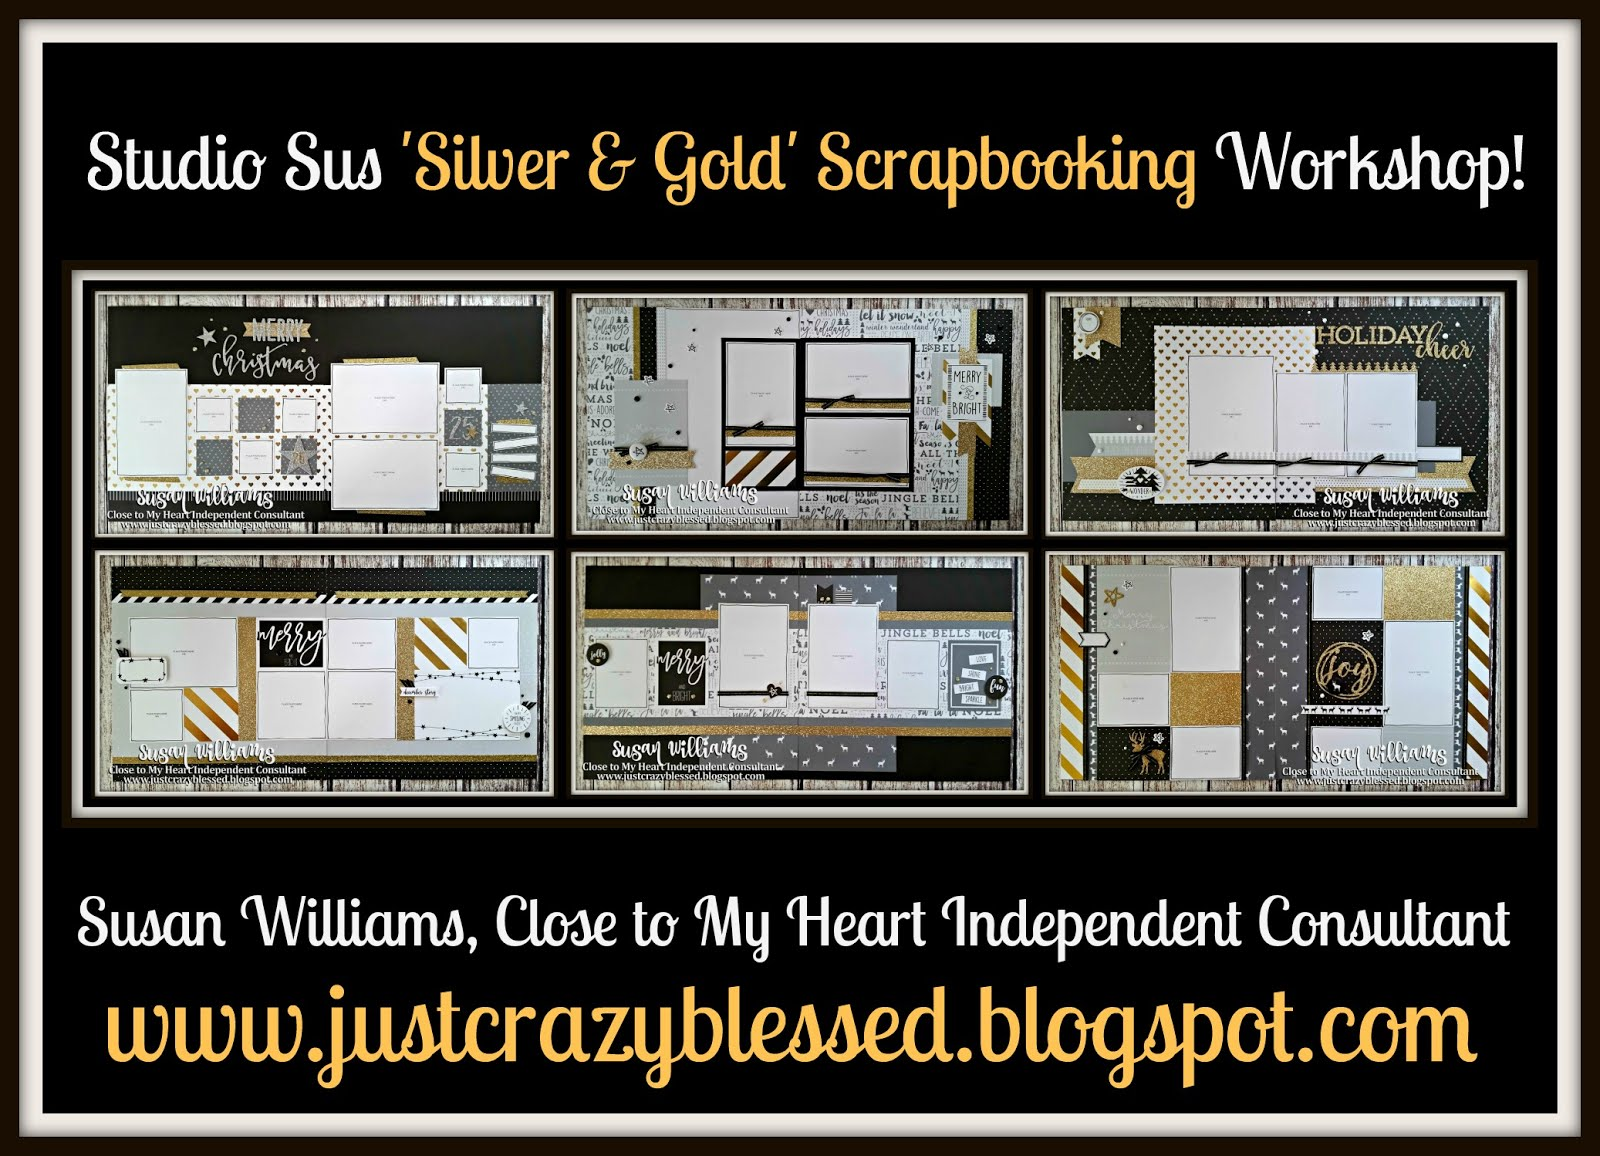 'Silver & Gold' Scrapbooking Workshop!